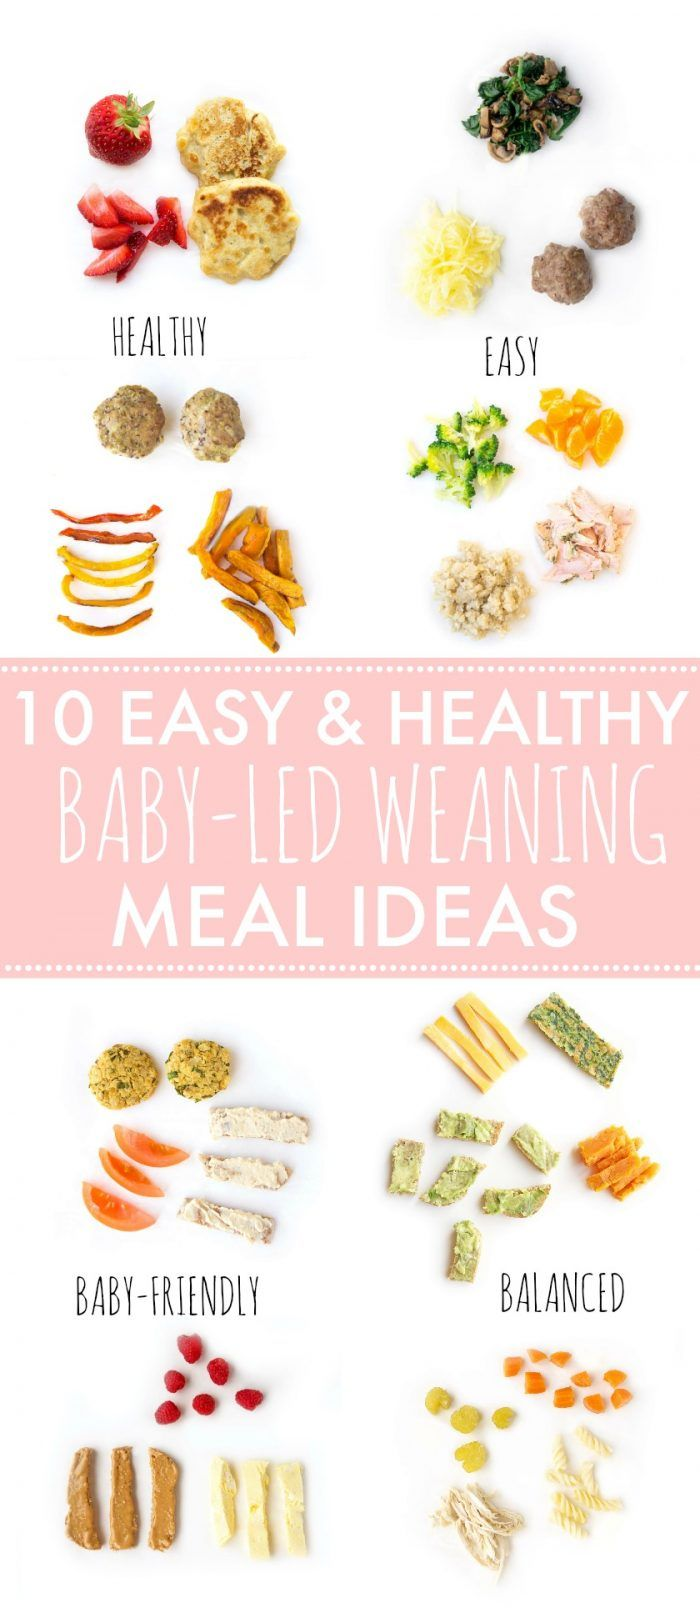 10 Easy & Healthy Baby-Led Weaning Meal Ideas #healthyliving